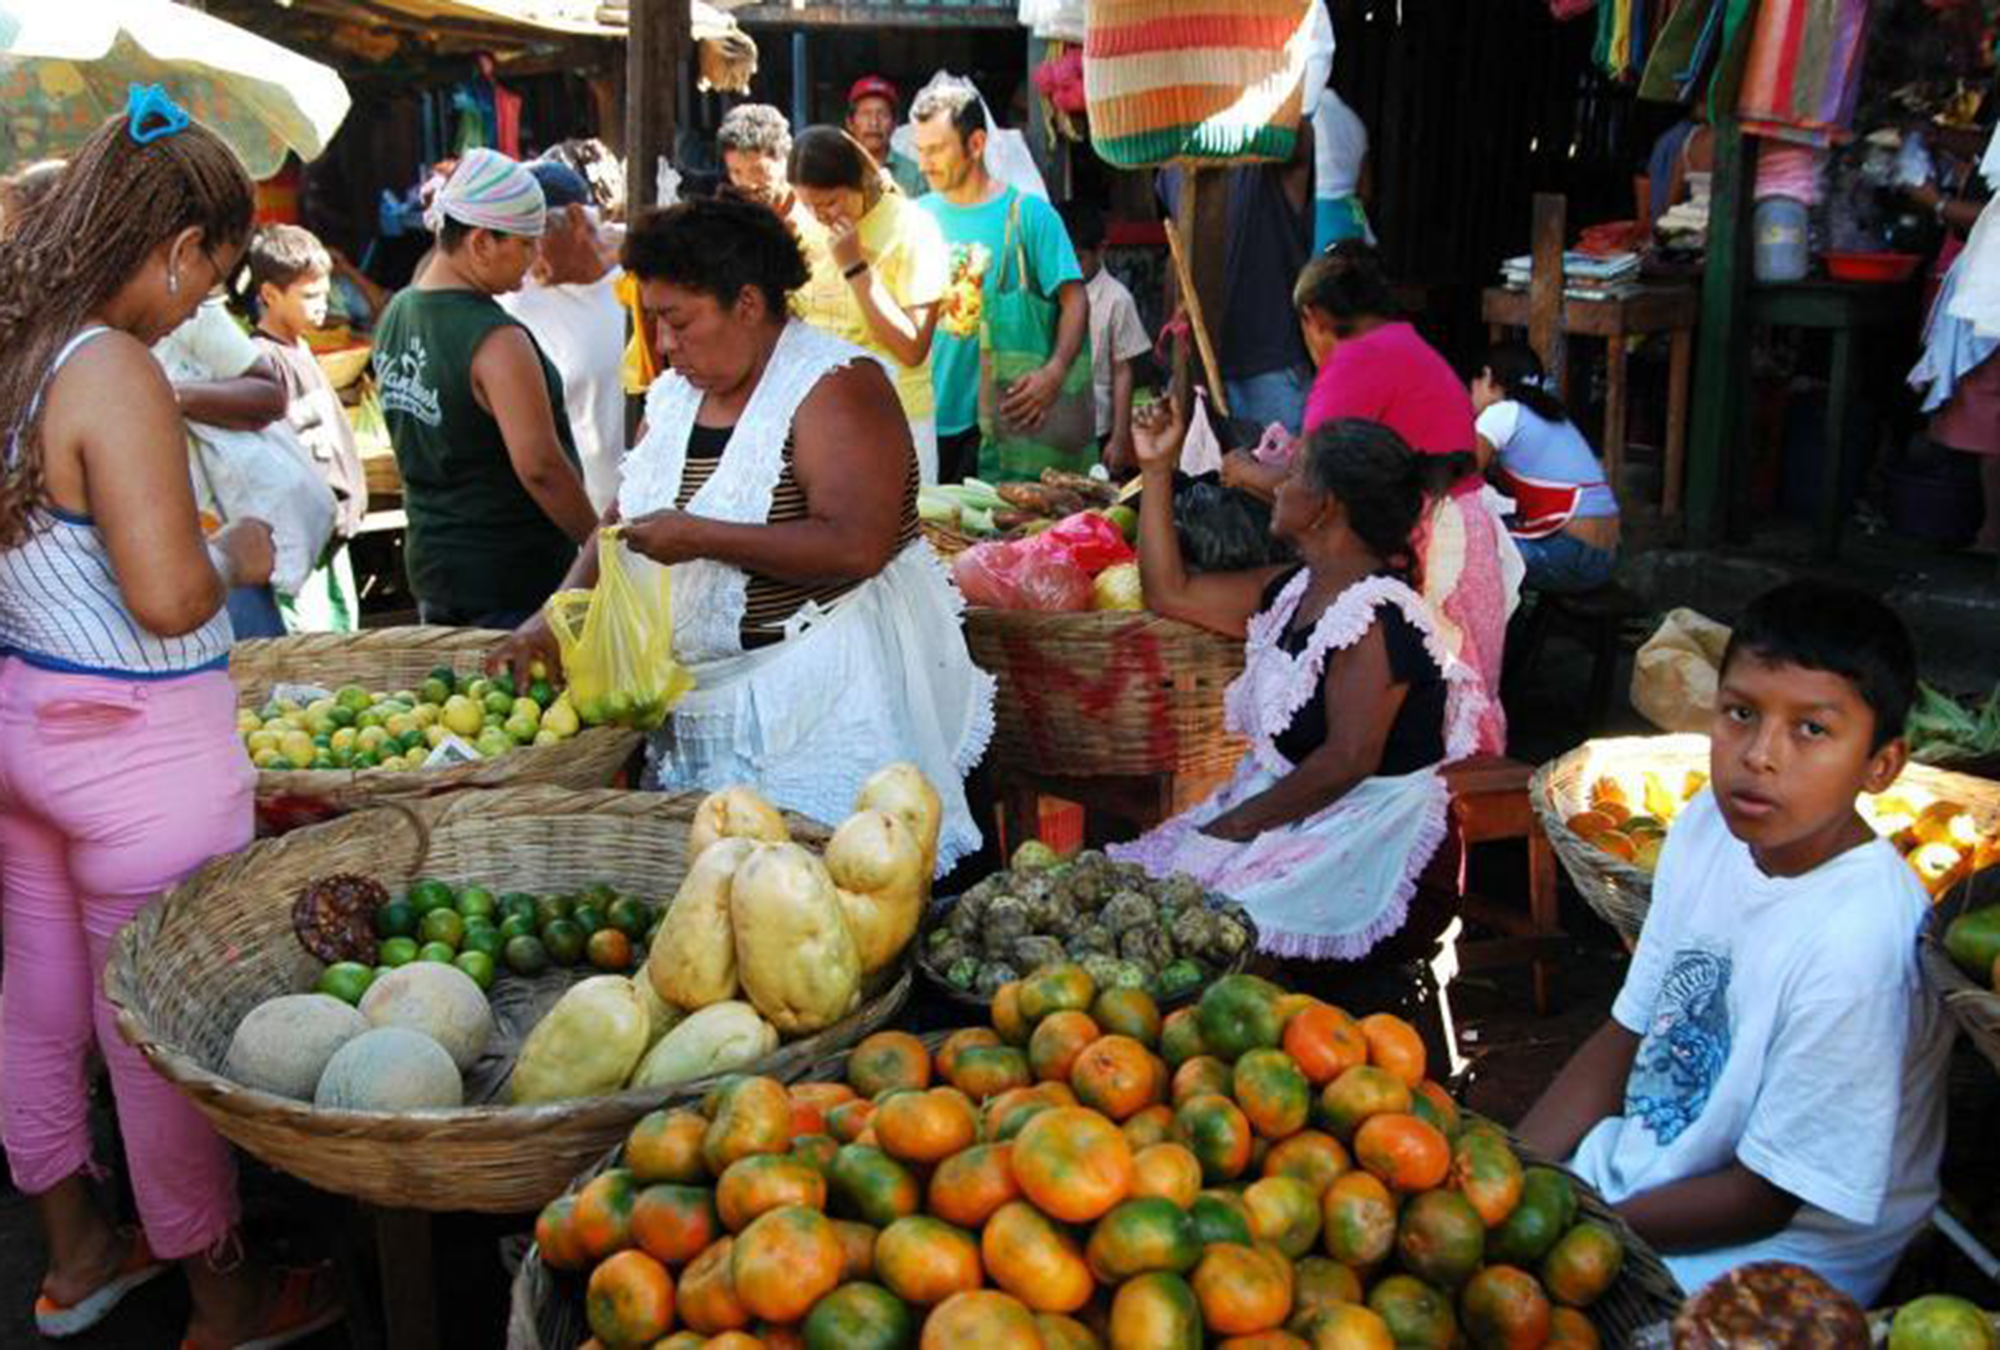 A family operates their market stall together in Nicaragua.